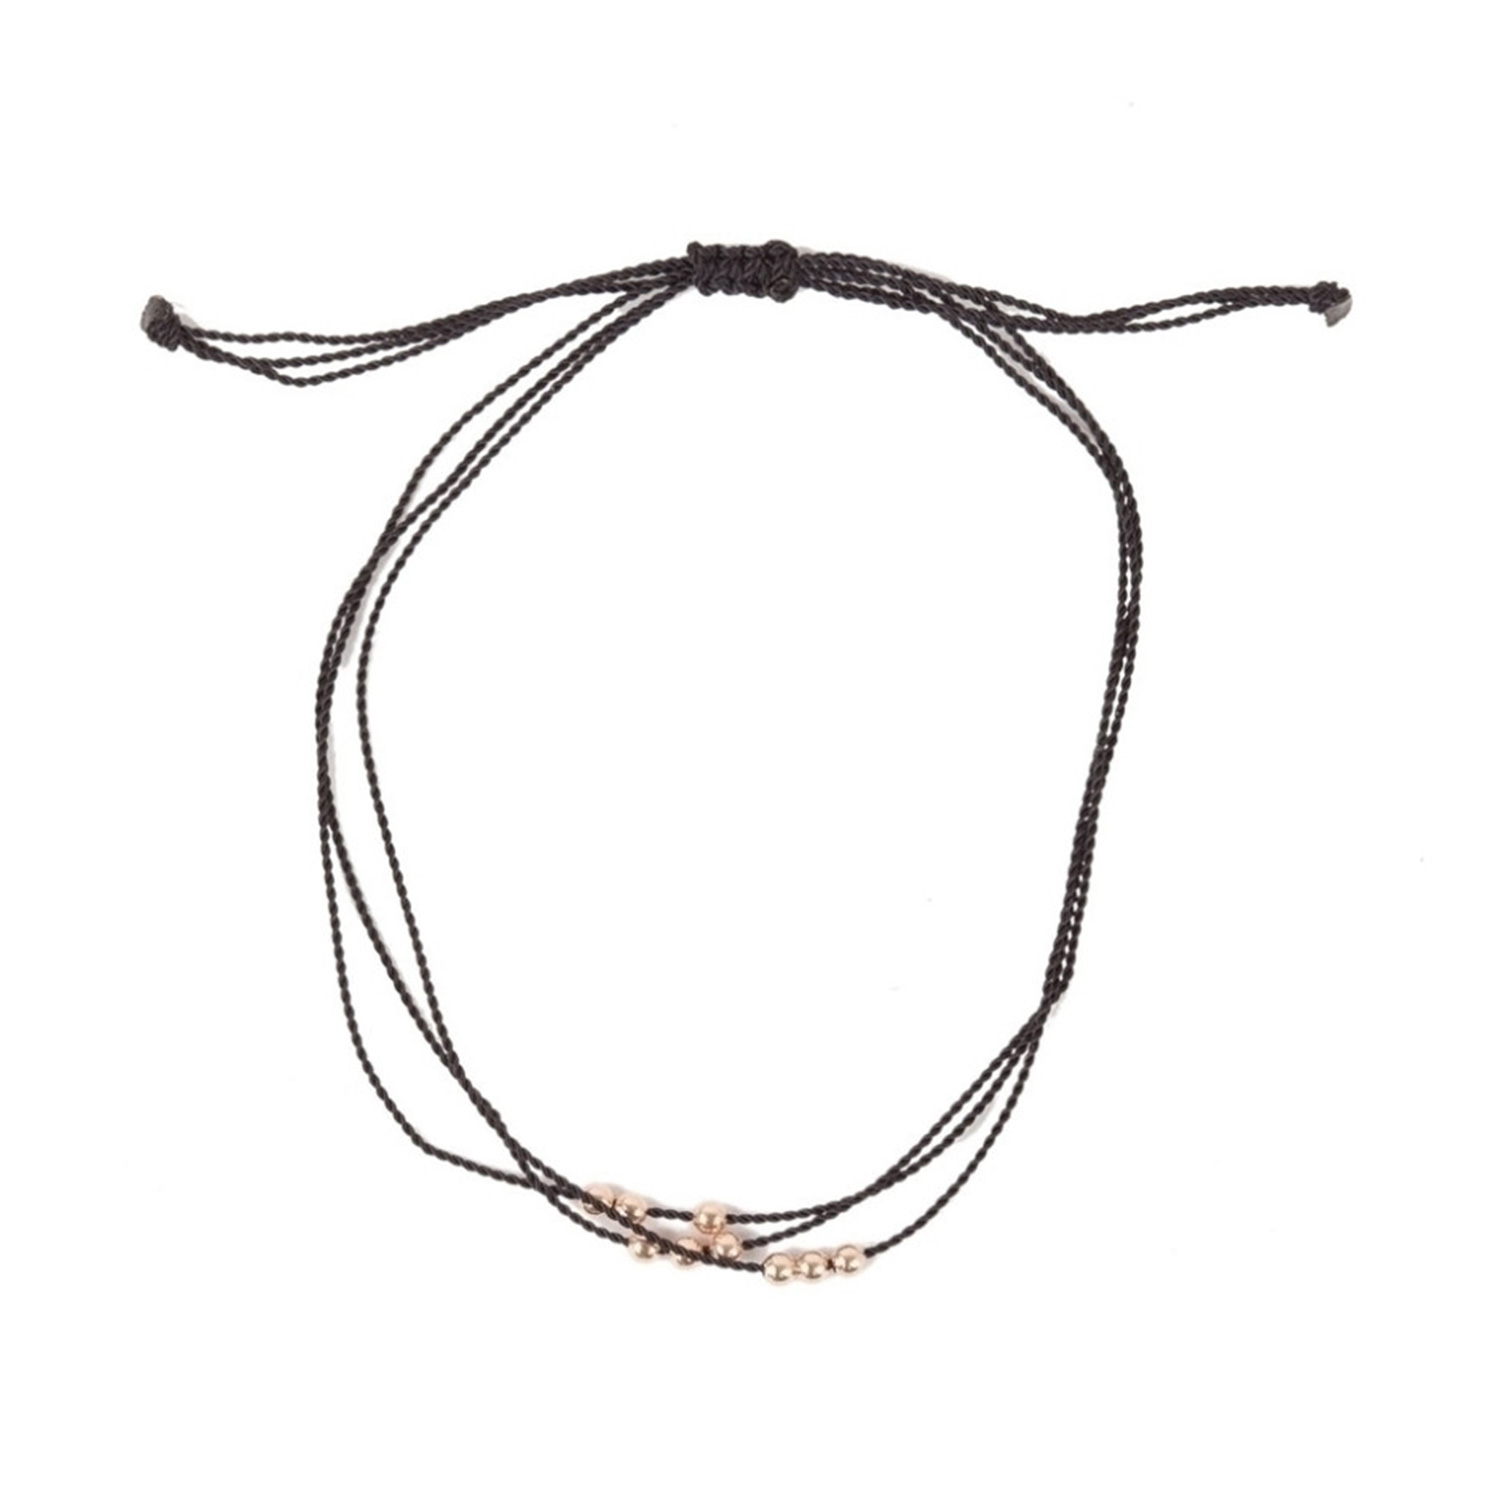 Friendship Bracelet With Rose Gold Beads Black